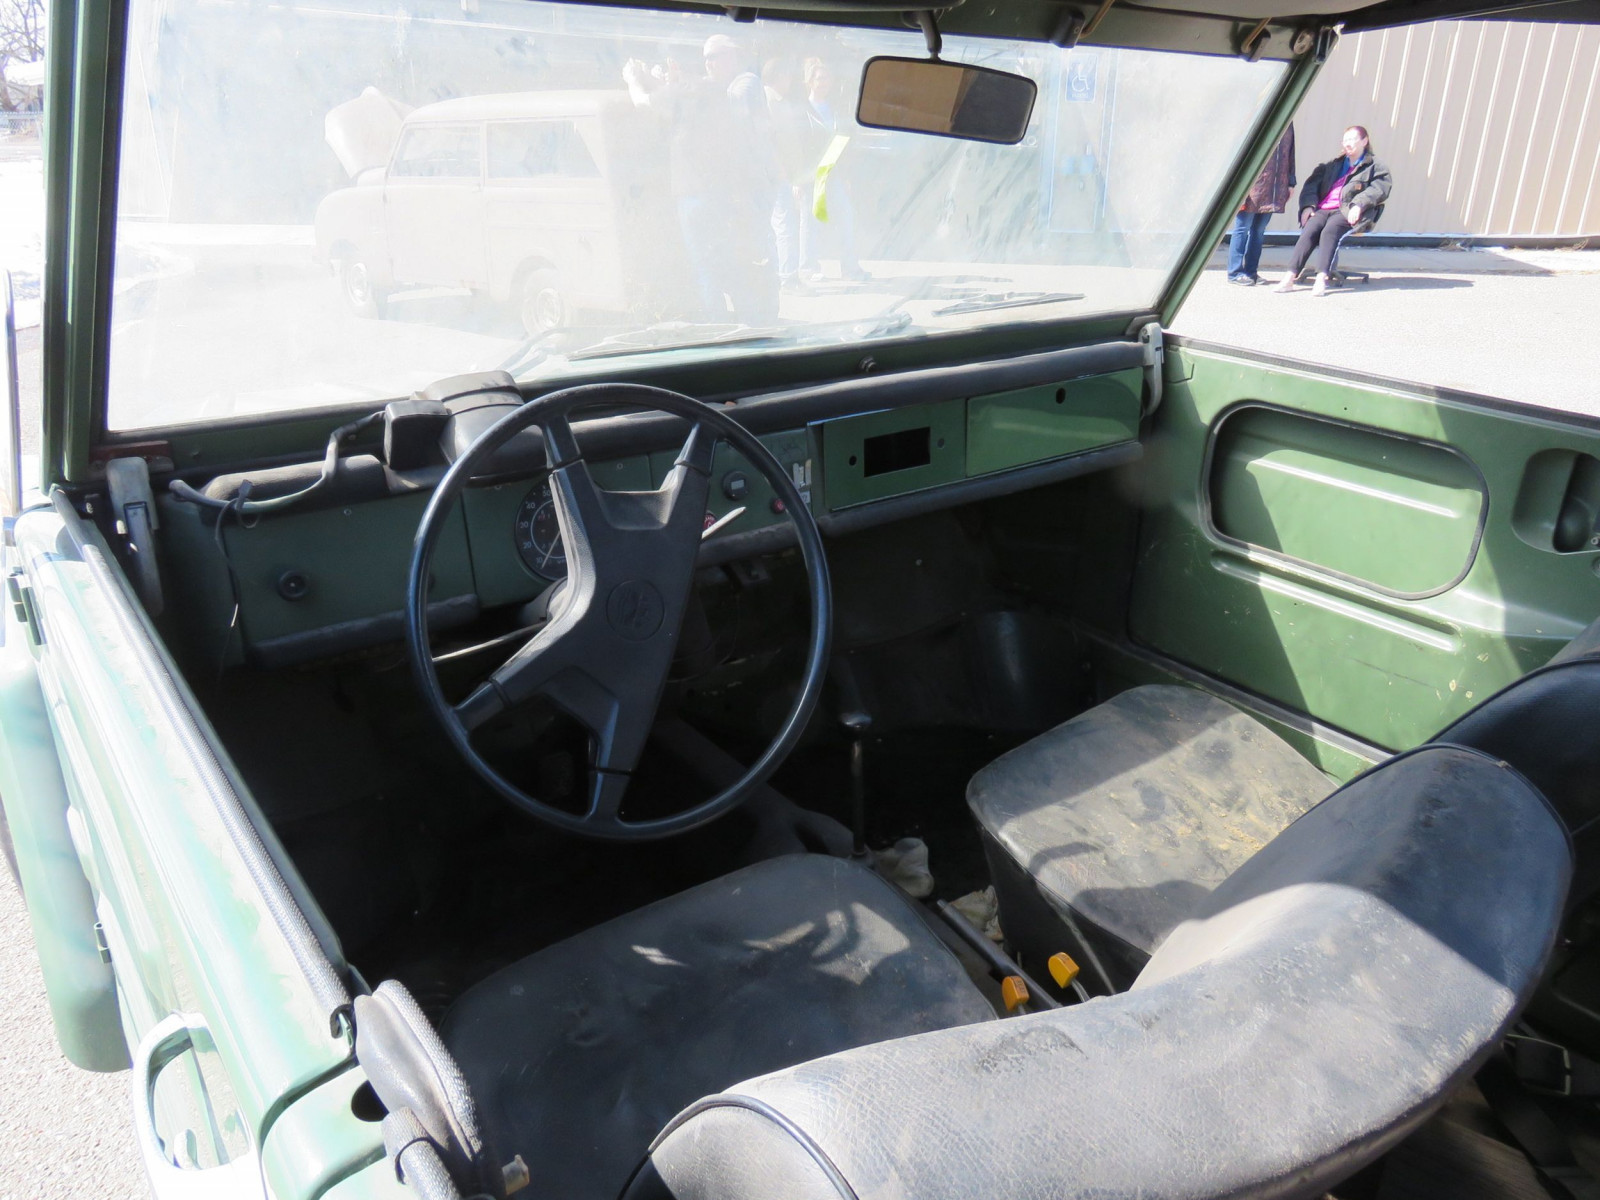 1974 Volkswagen Thing - Image 6